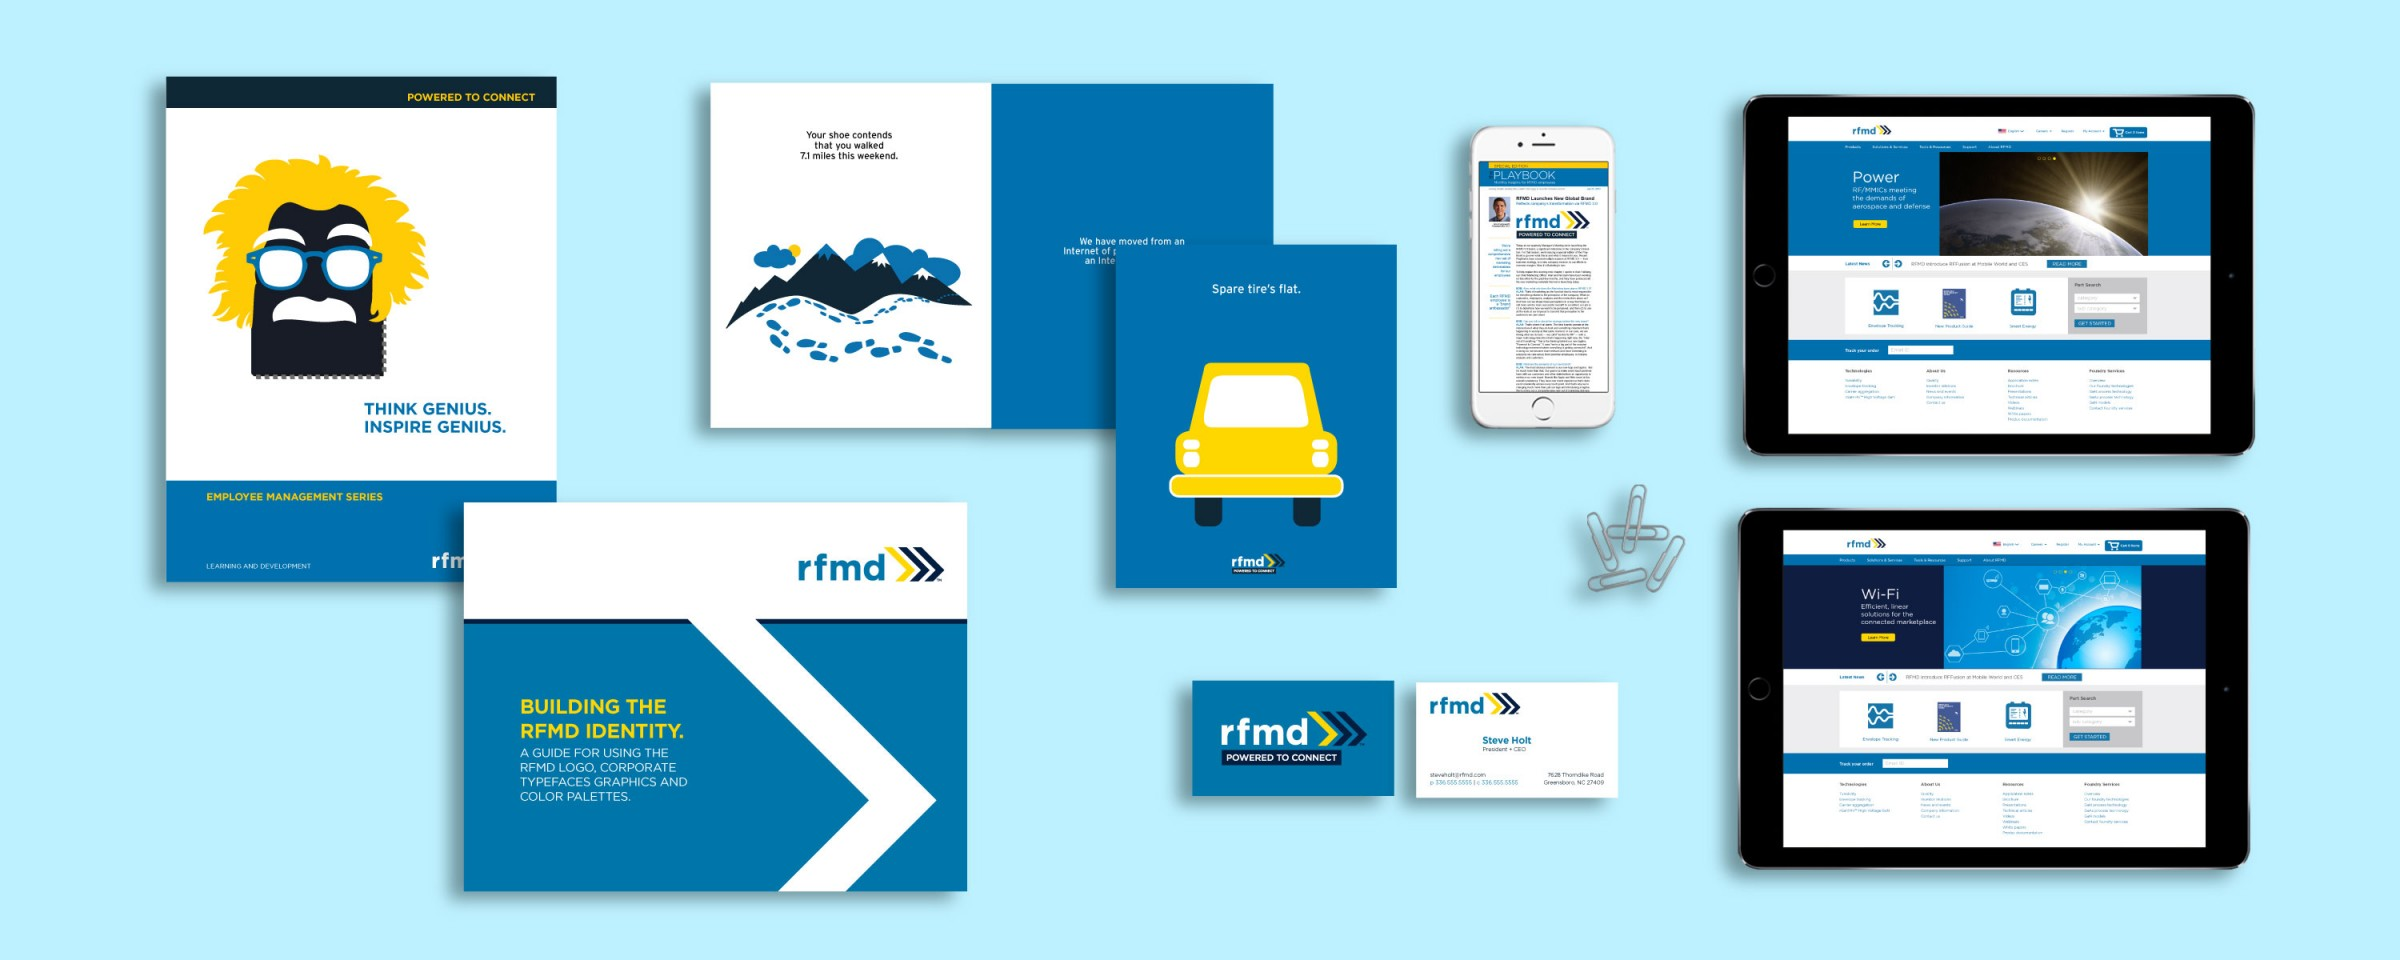 Branding work created for RFMD.